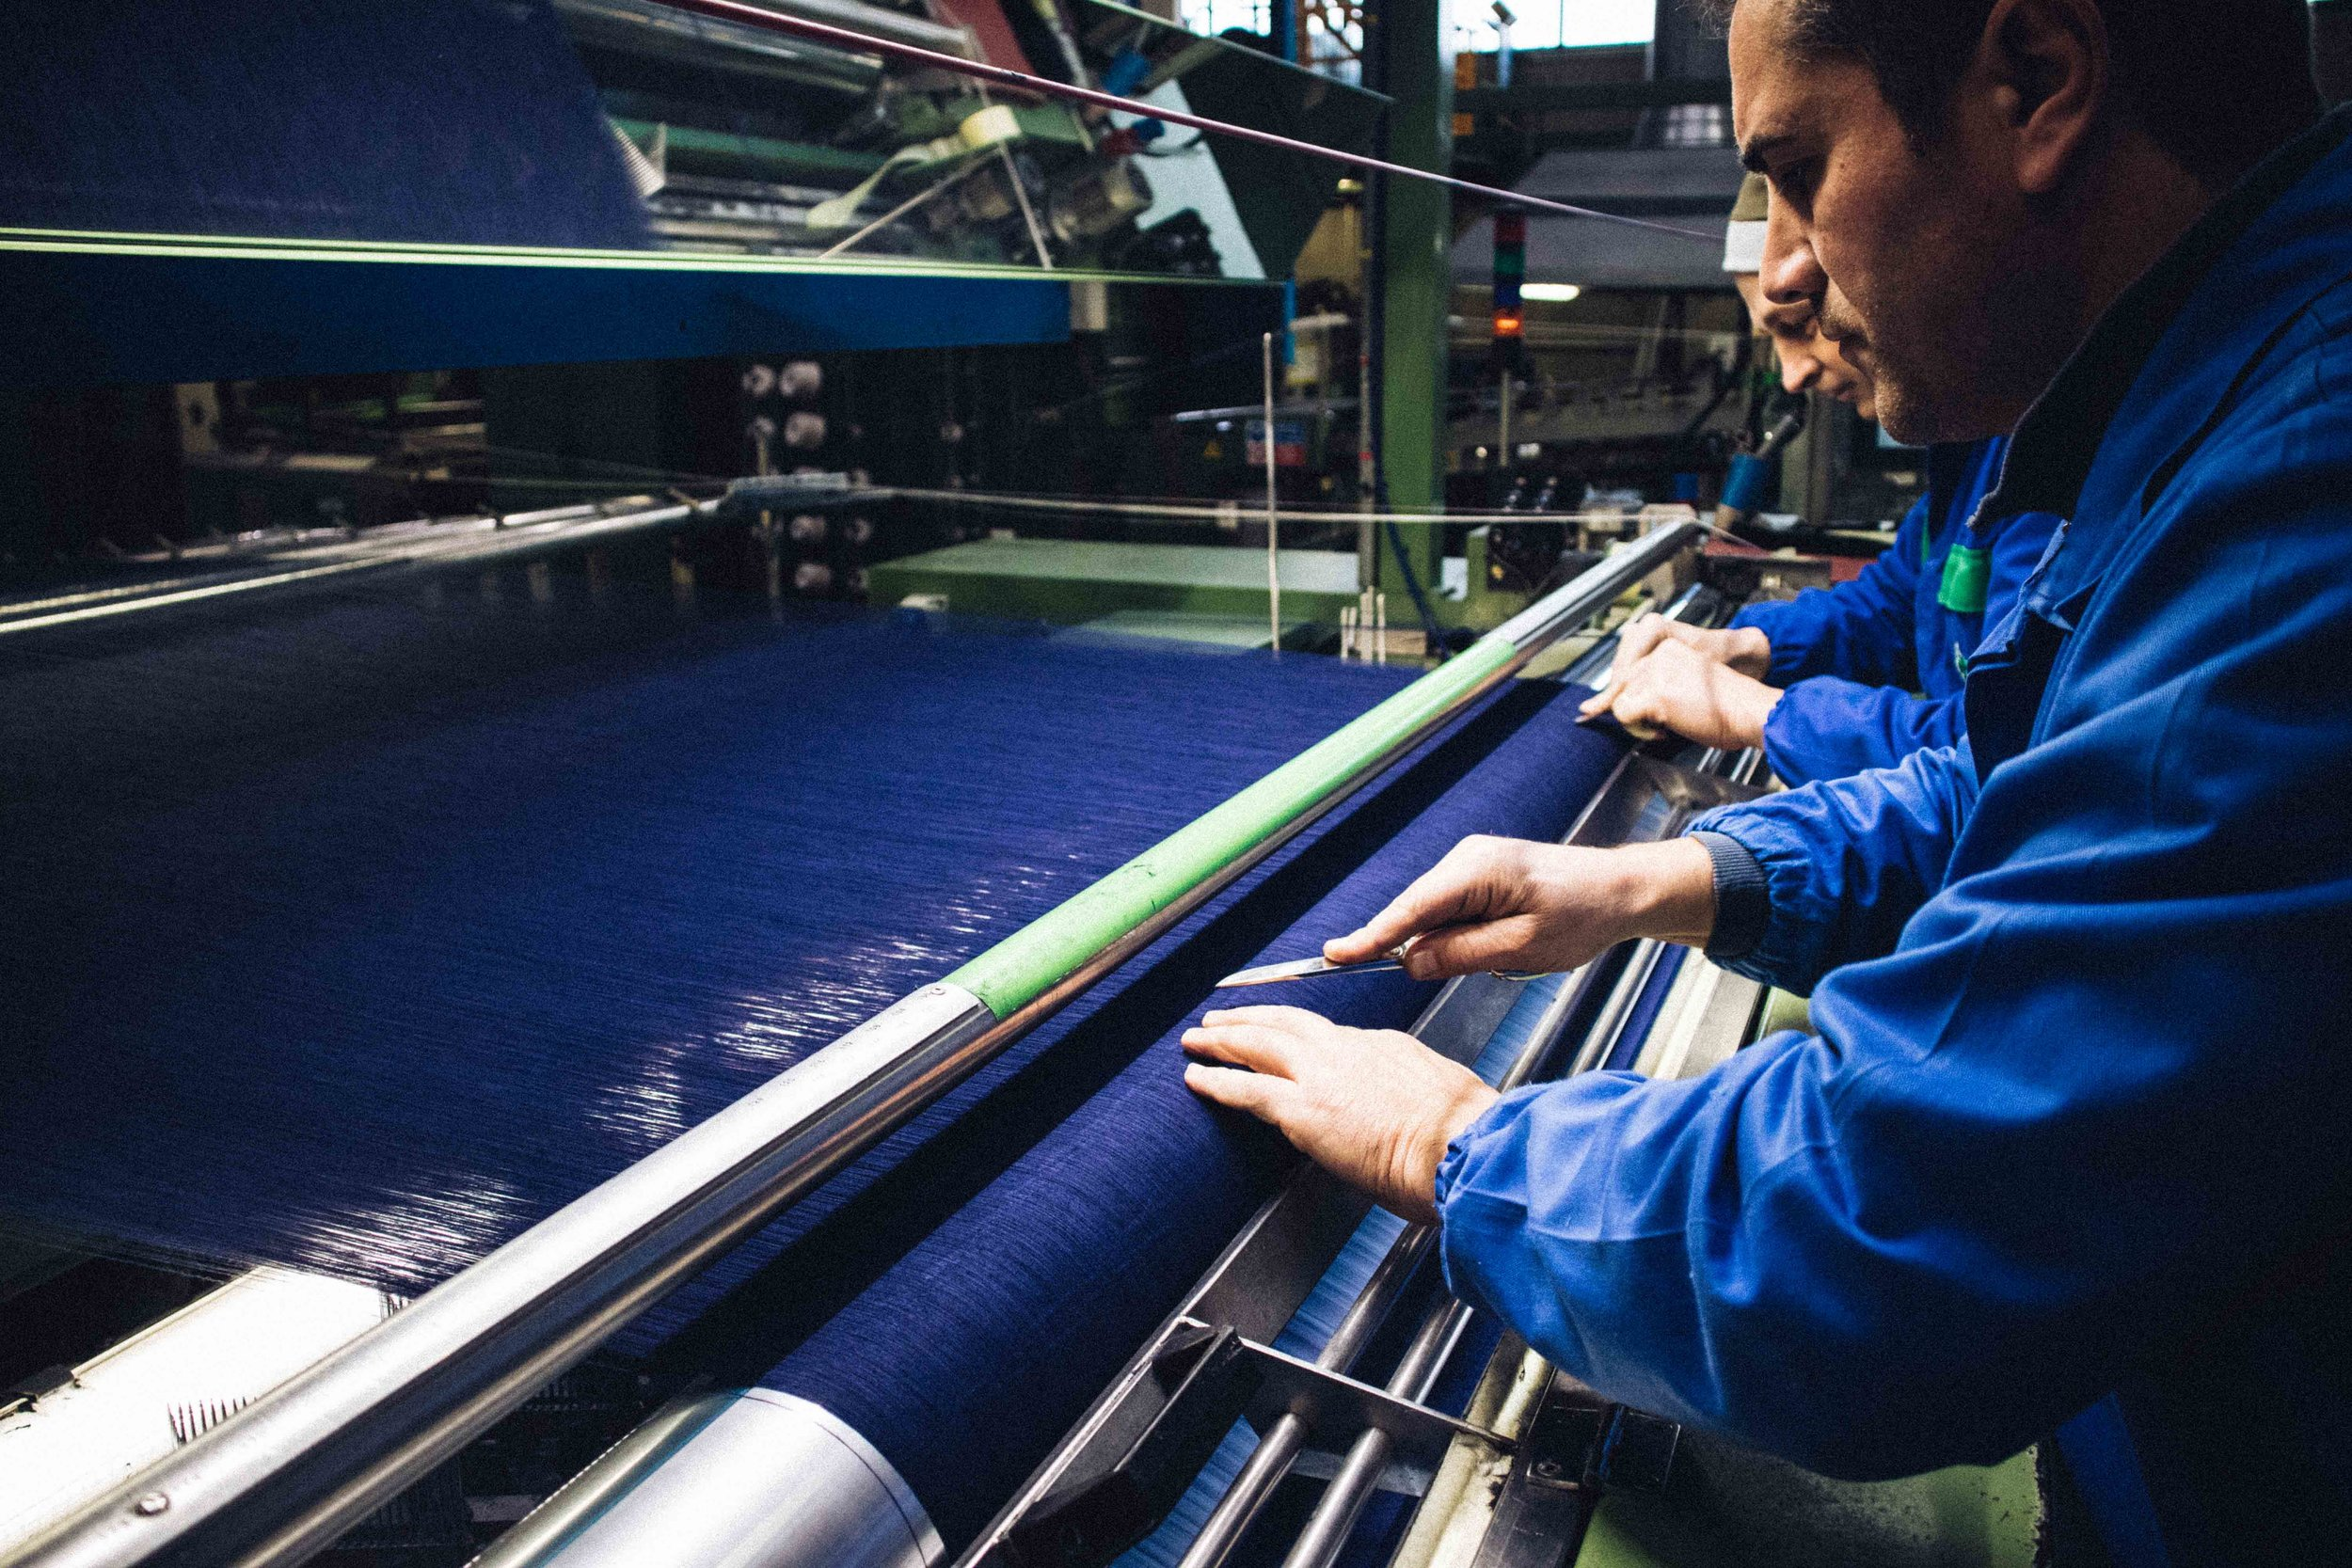 EXCLUSIVE FABRICS & CRAFTSMANSHIP - All materials are sourced from Italy and Japan and produced in Italy to maintain our dedication to quality and craftsmanship.